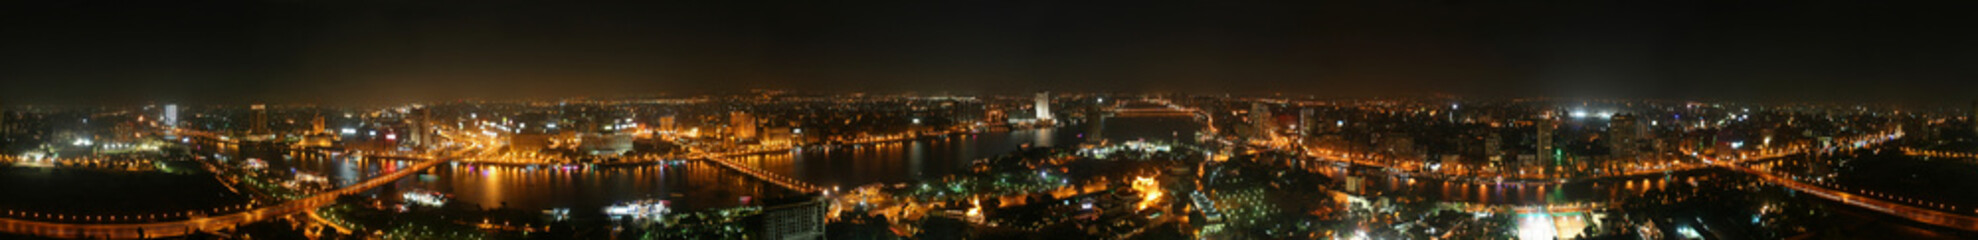 Cairo at night - 360